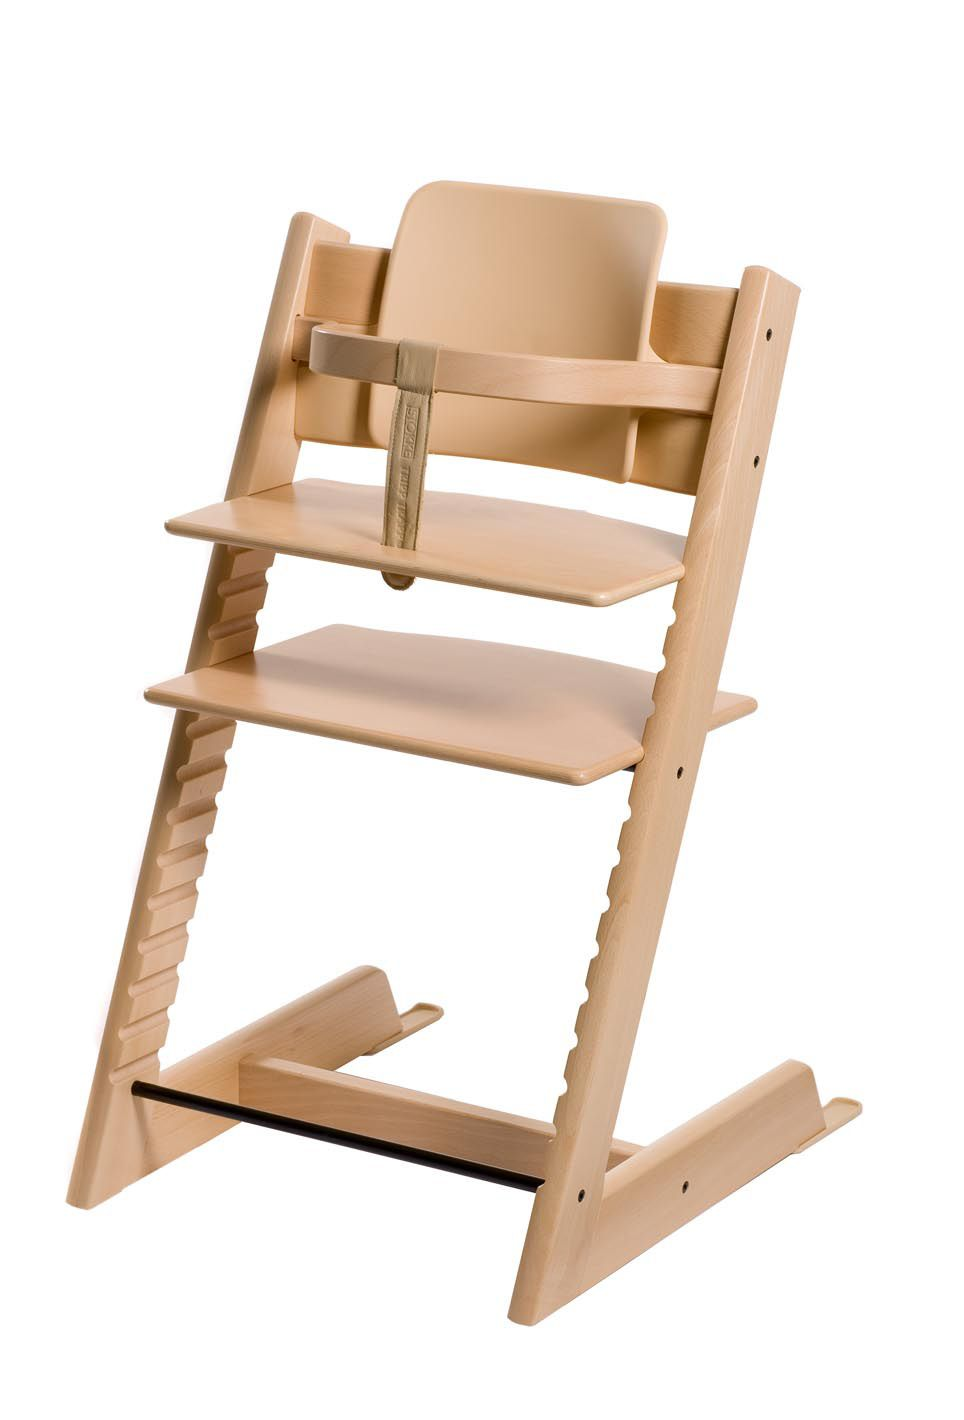 trip trap highchair called stokke very popular in denmark. Black Bedroom Furniture Sets. Home Design Ideas